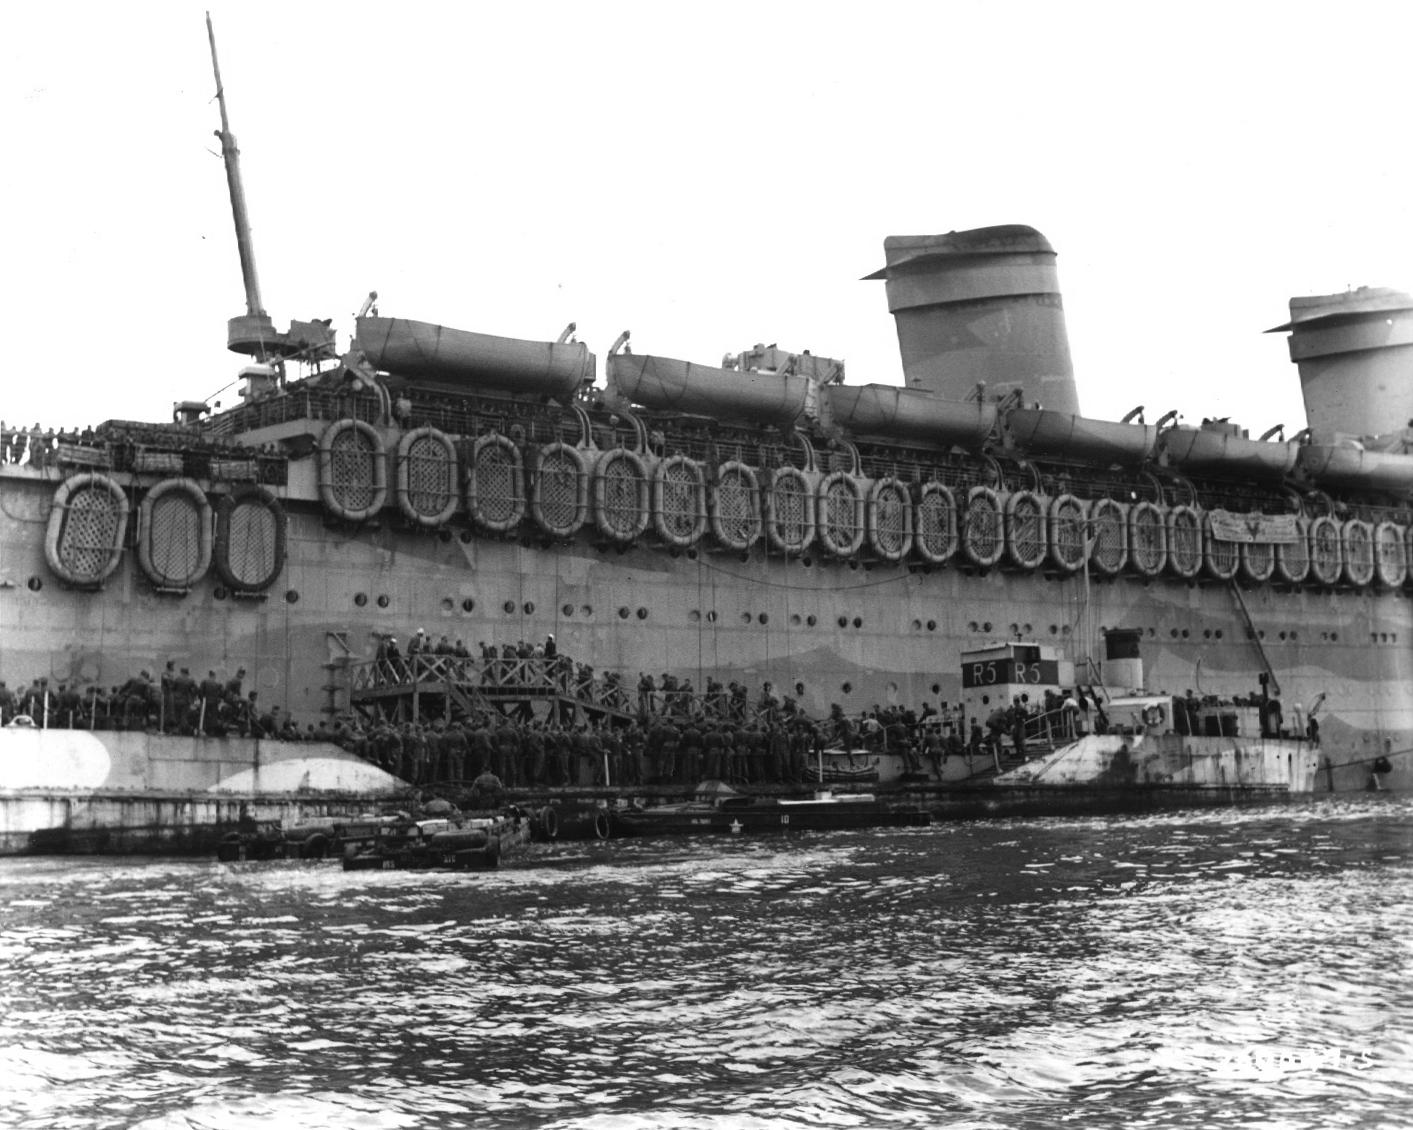 Boarding the USS West Point